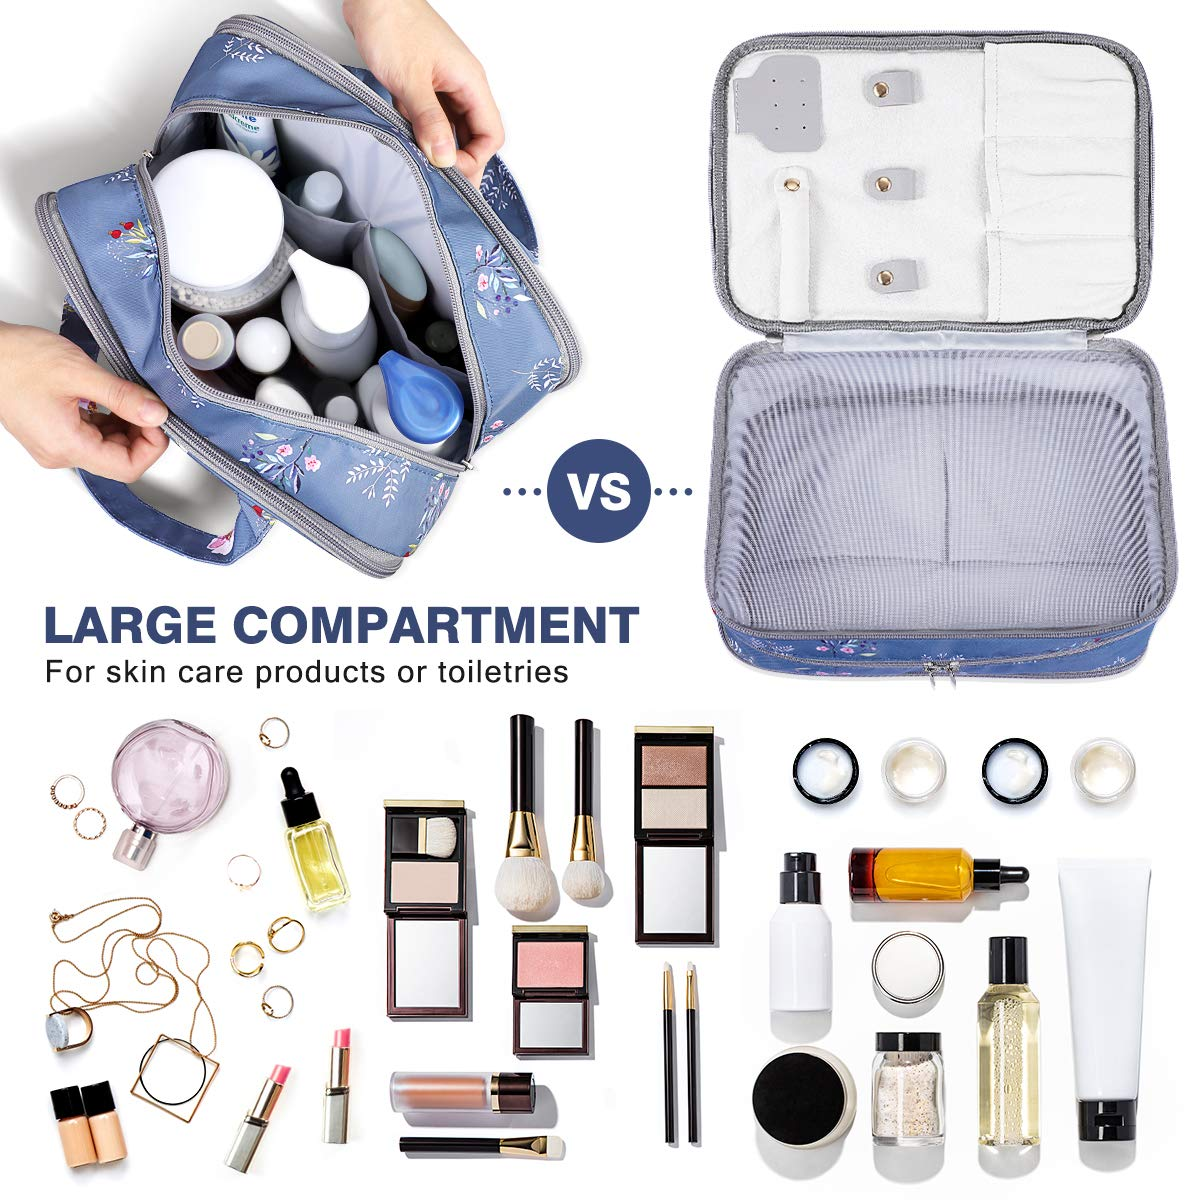 Travel Makeup Bag Large Cosmetic Bag with A Handy Makeup Pouch, Water-resistant Hanging Toiletry Bag for Cosmetics Makeup